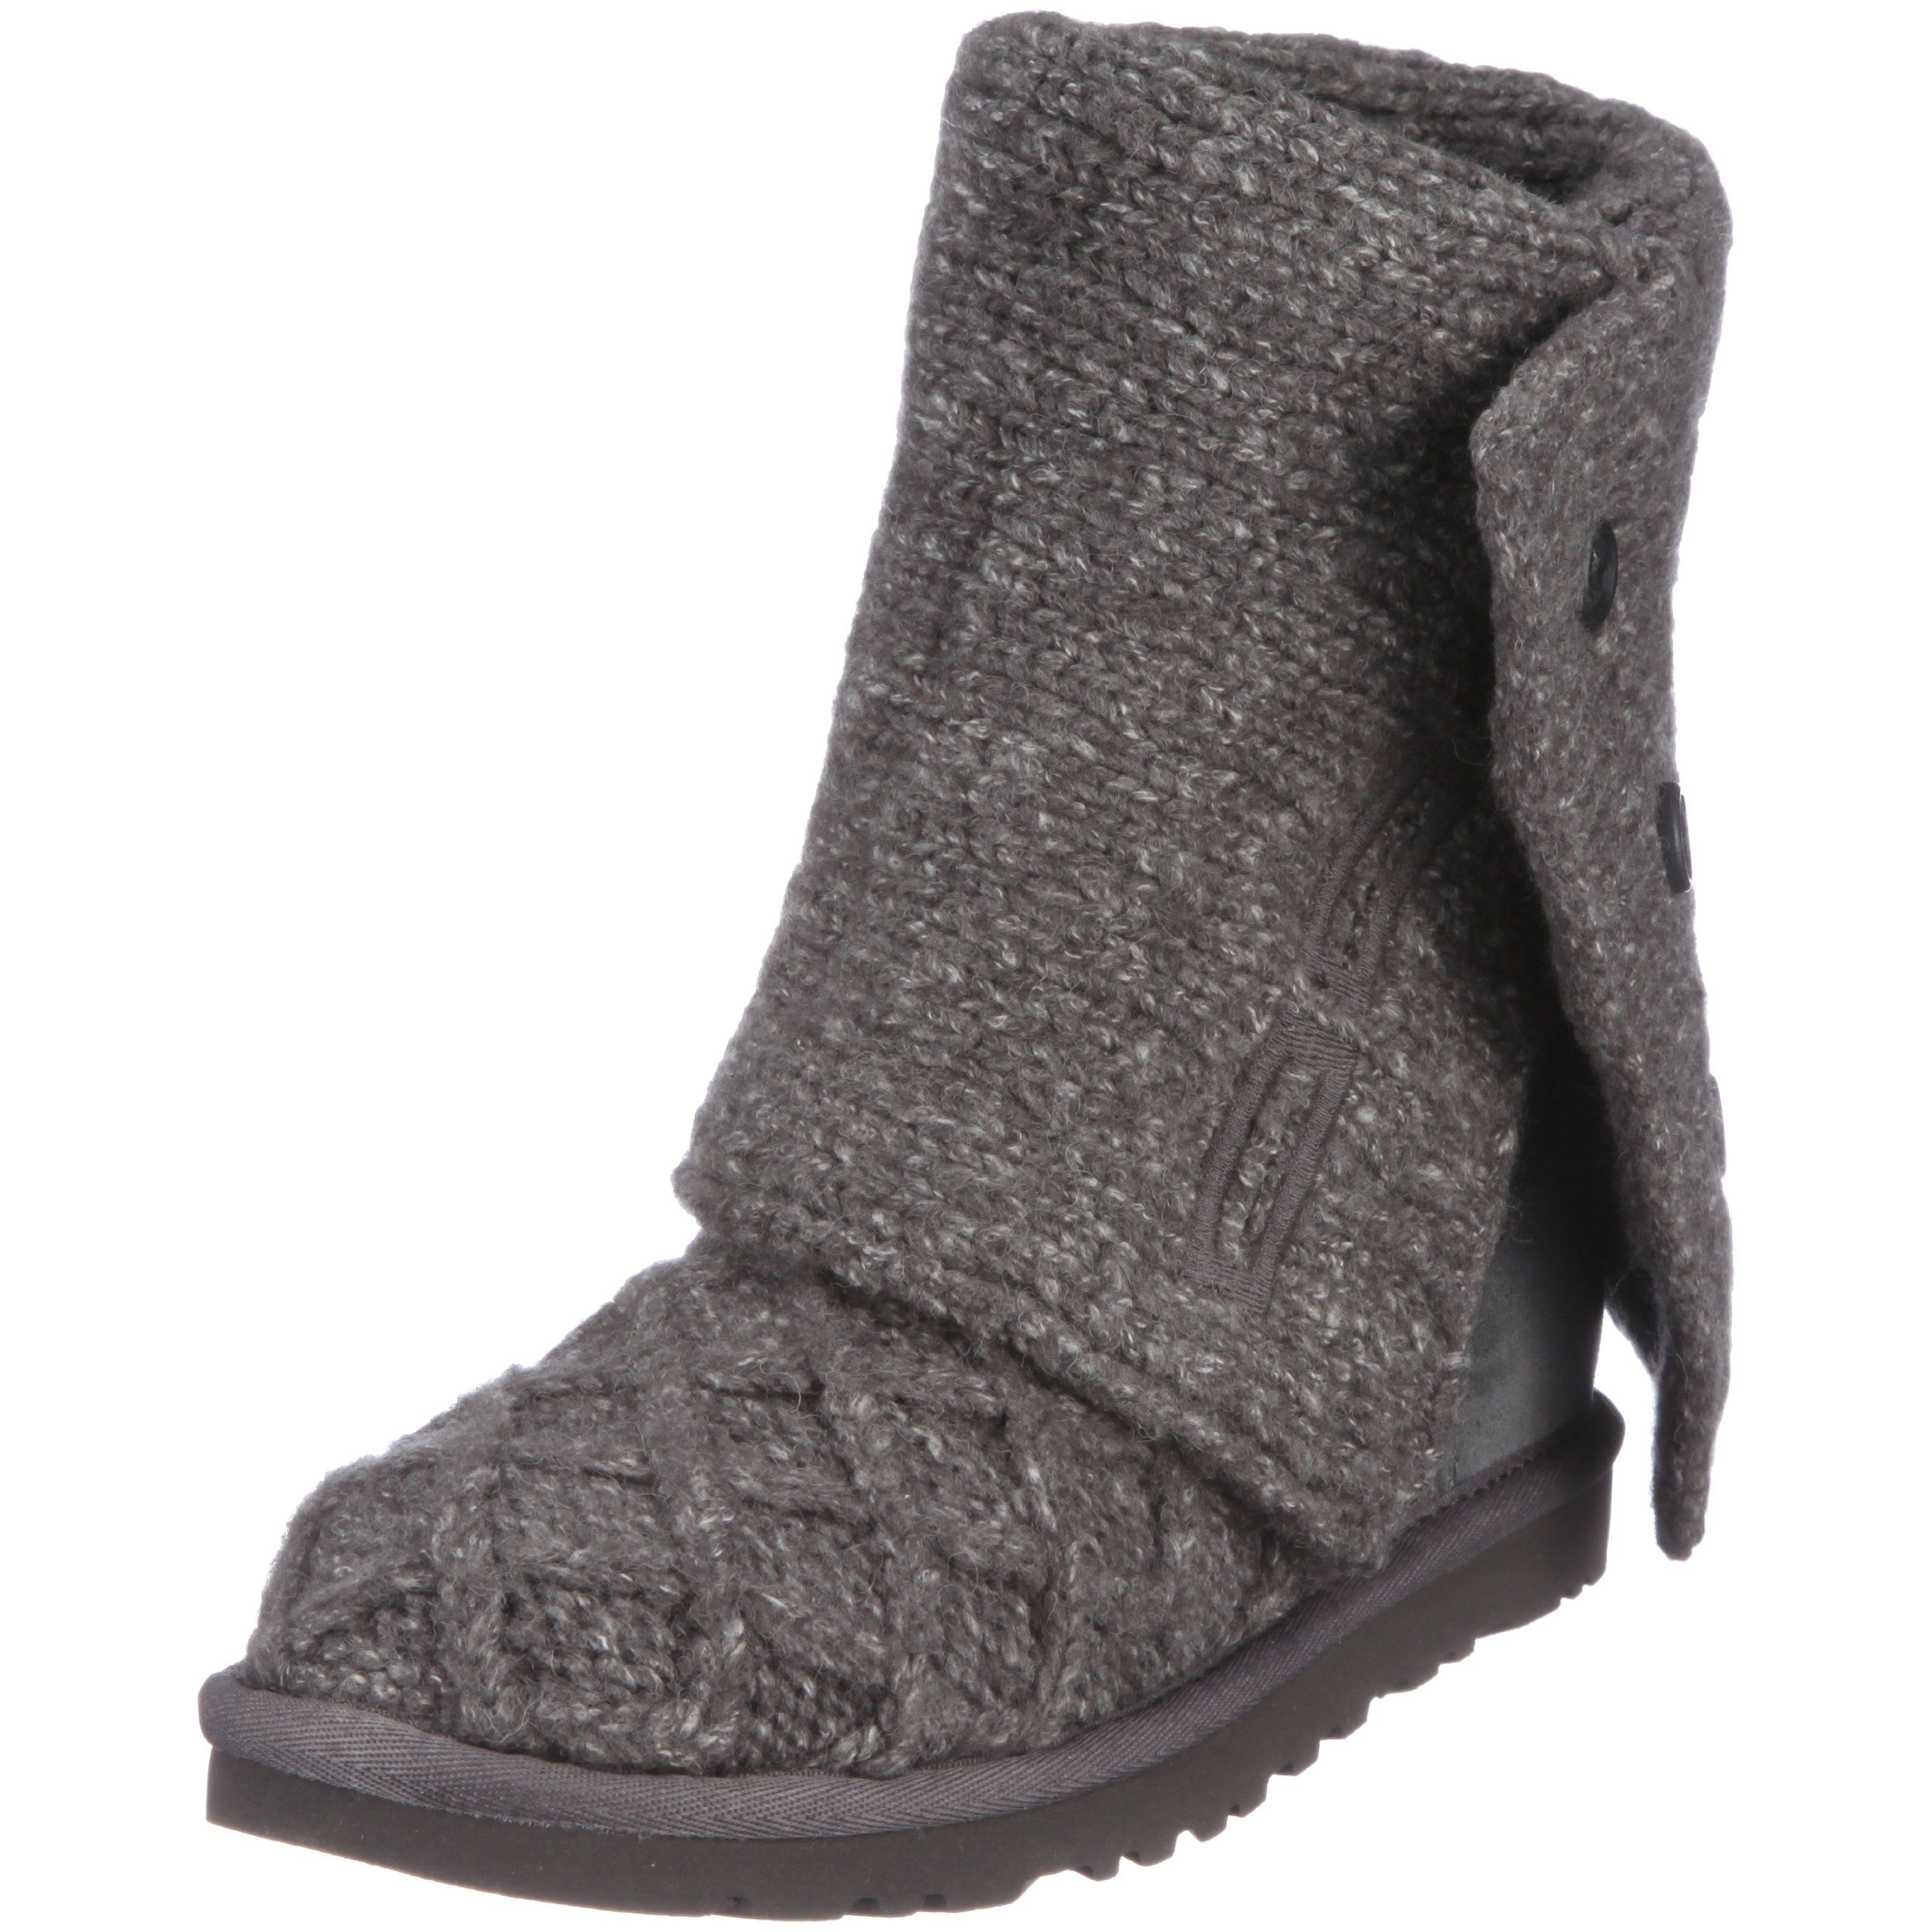 Shoes | Ugg boots, Womens uggs